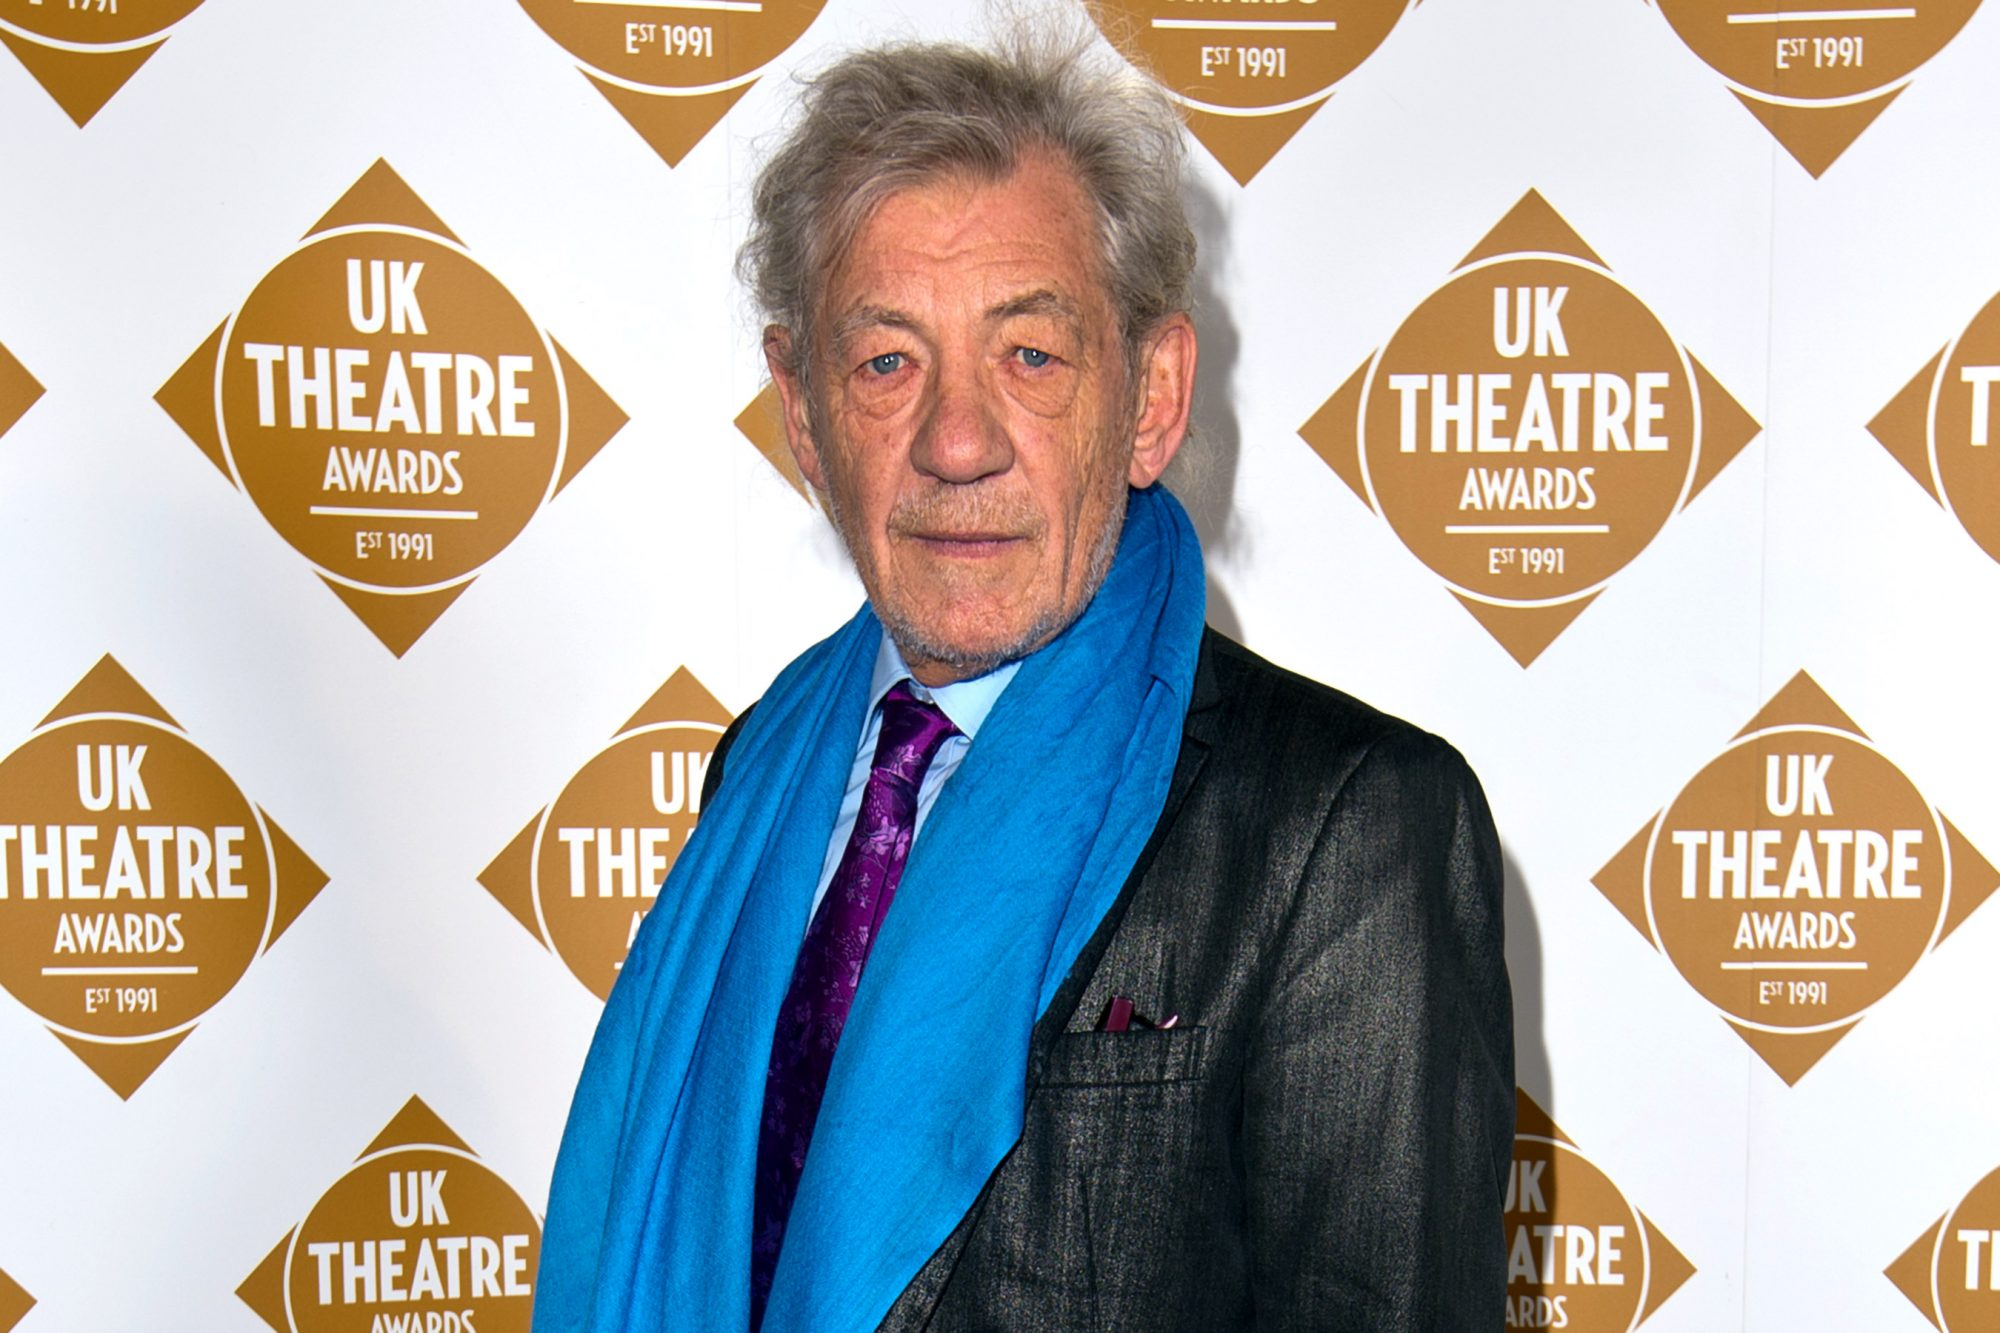 UK Theatre Awards